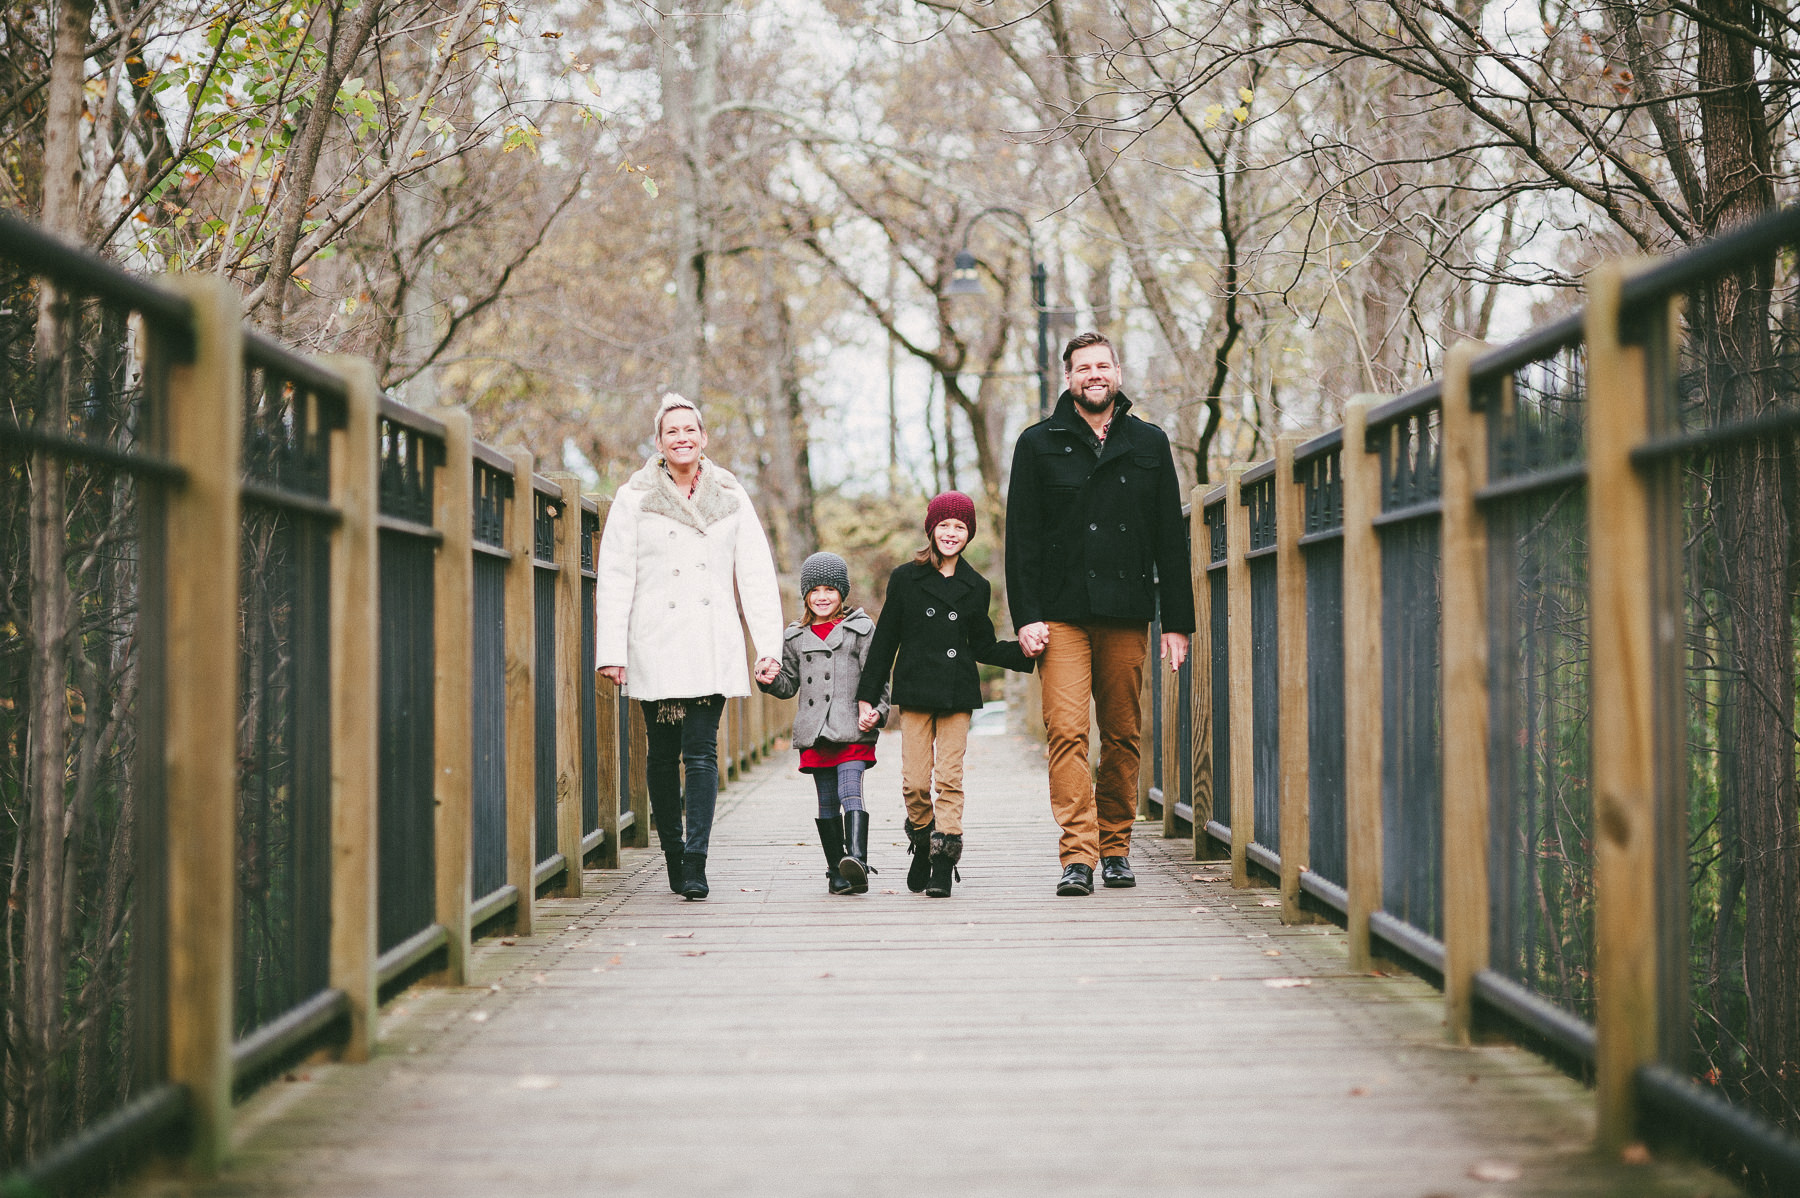 breighton-and-basette-photography-copyrighted-image-blog-betty-chad-and-company-family-shoot-002.jpg